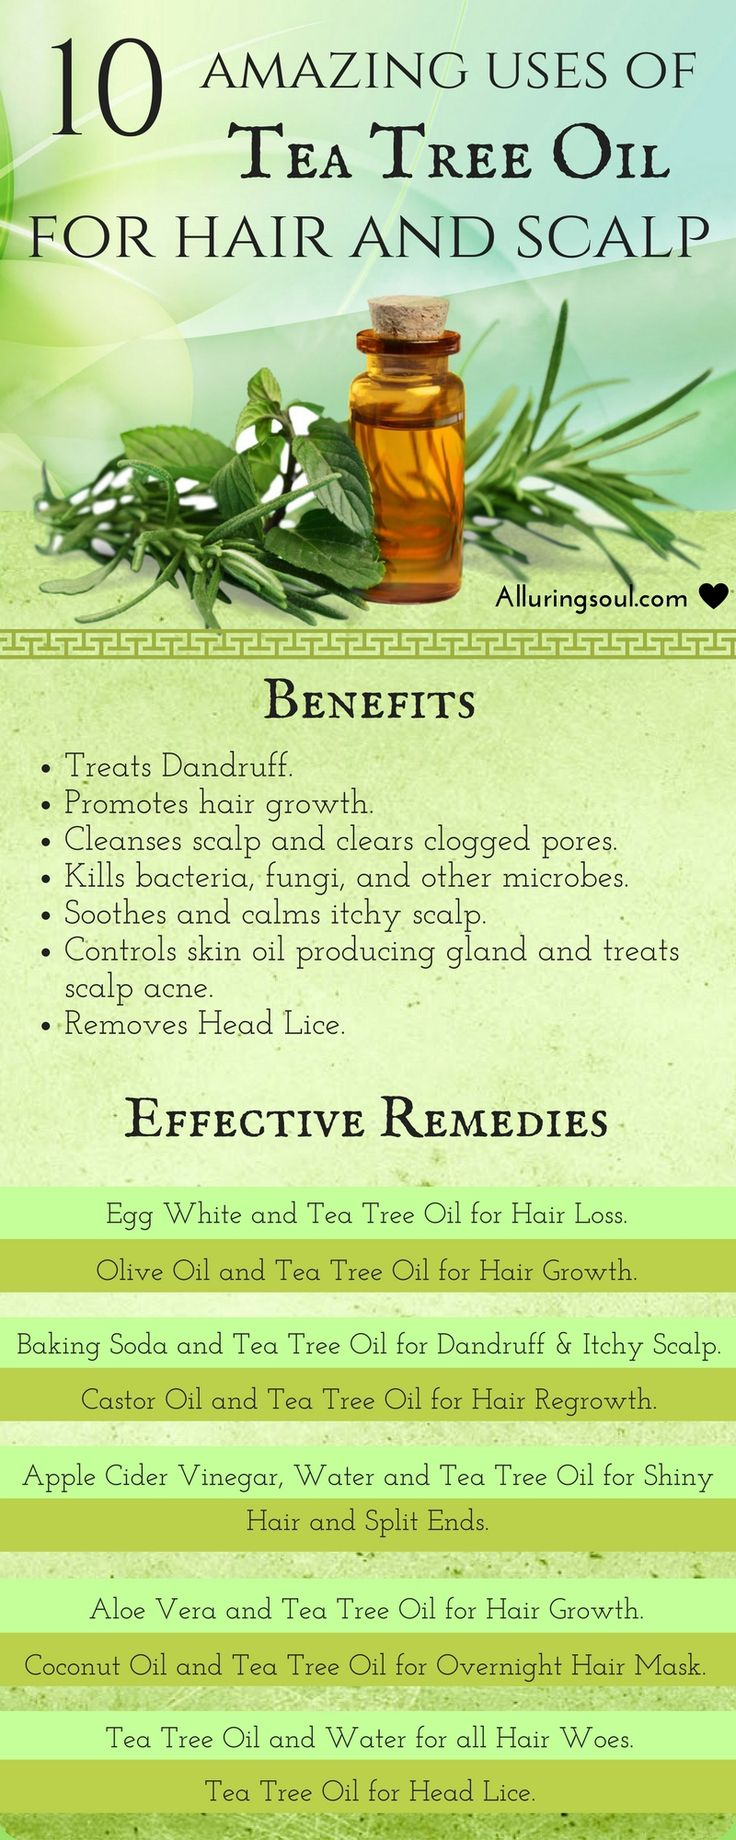 Tea tree oil for hair is considered as one of the best herb's oil to treat h...